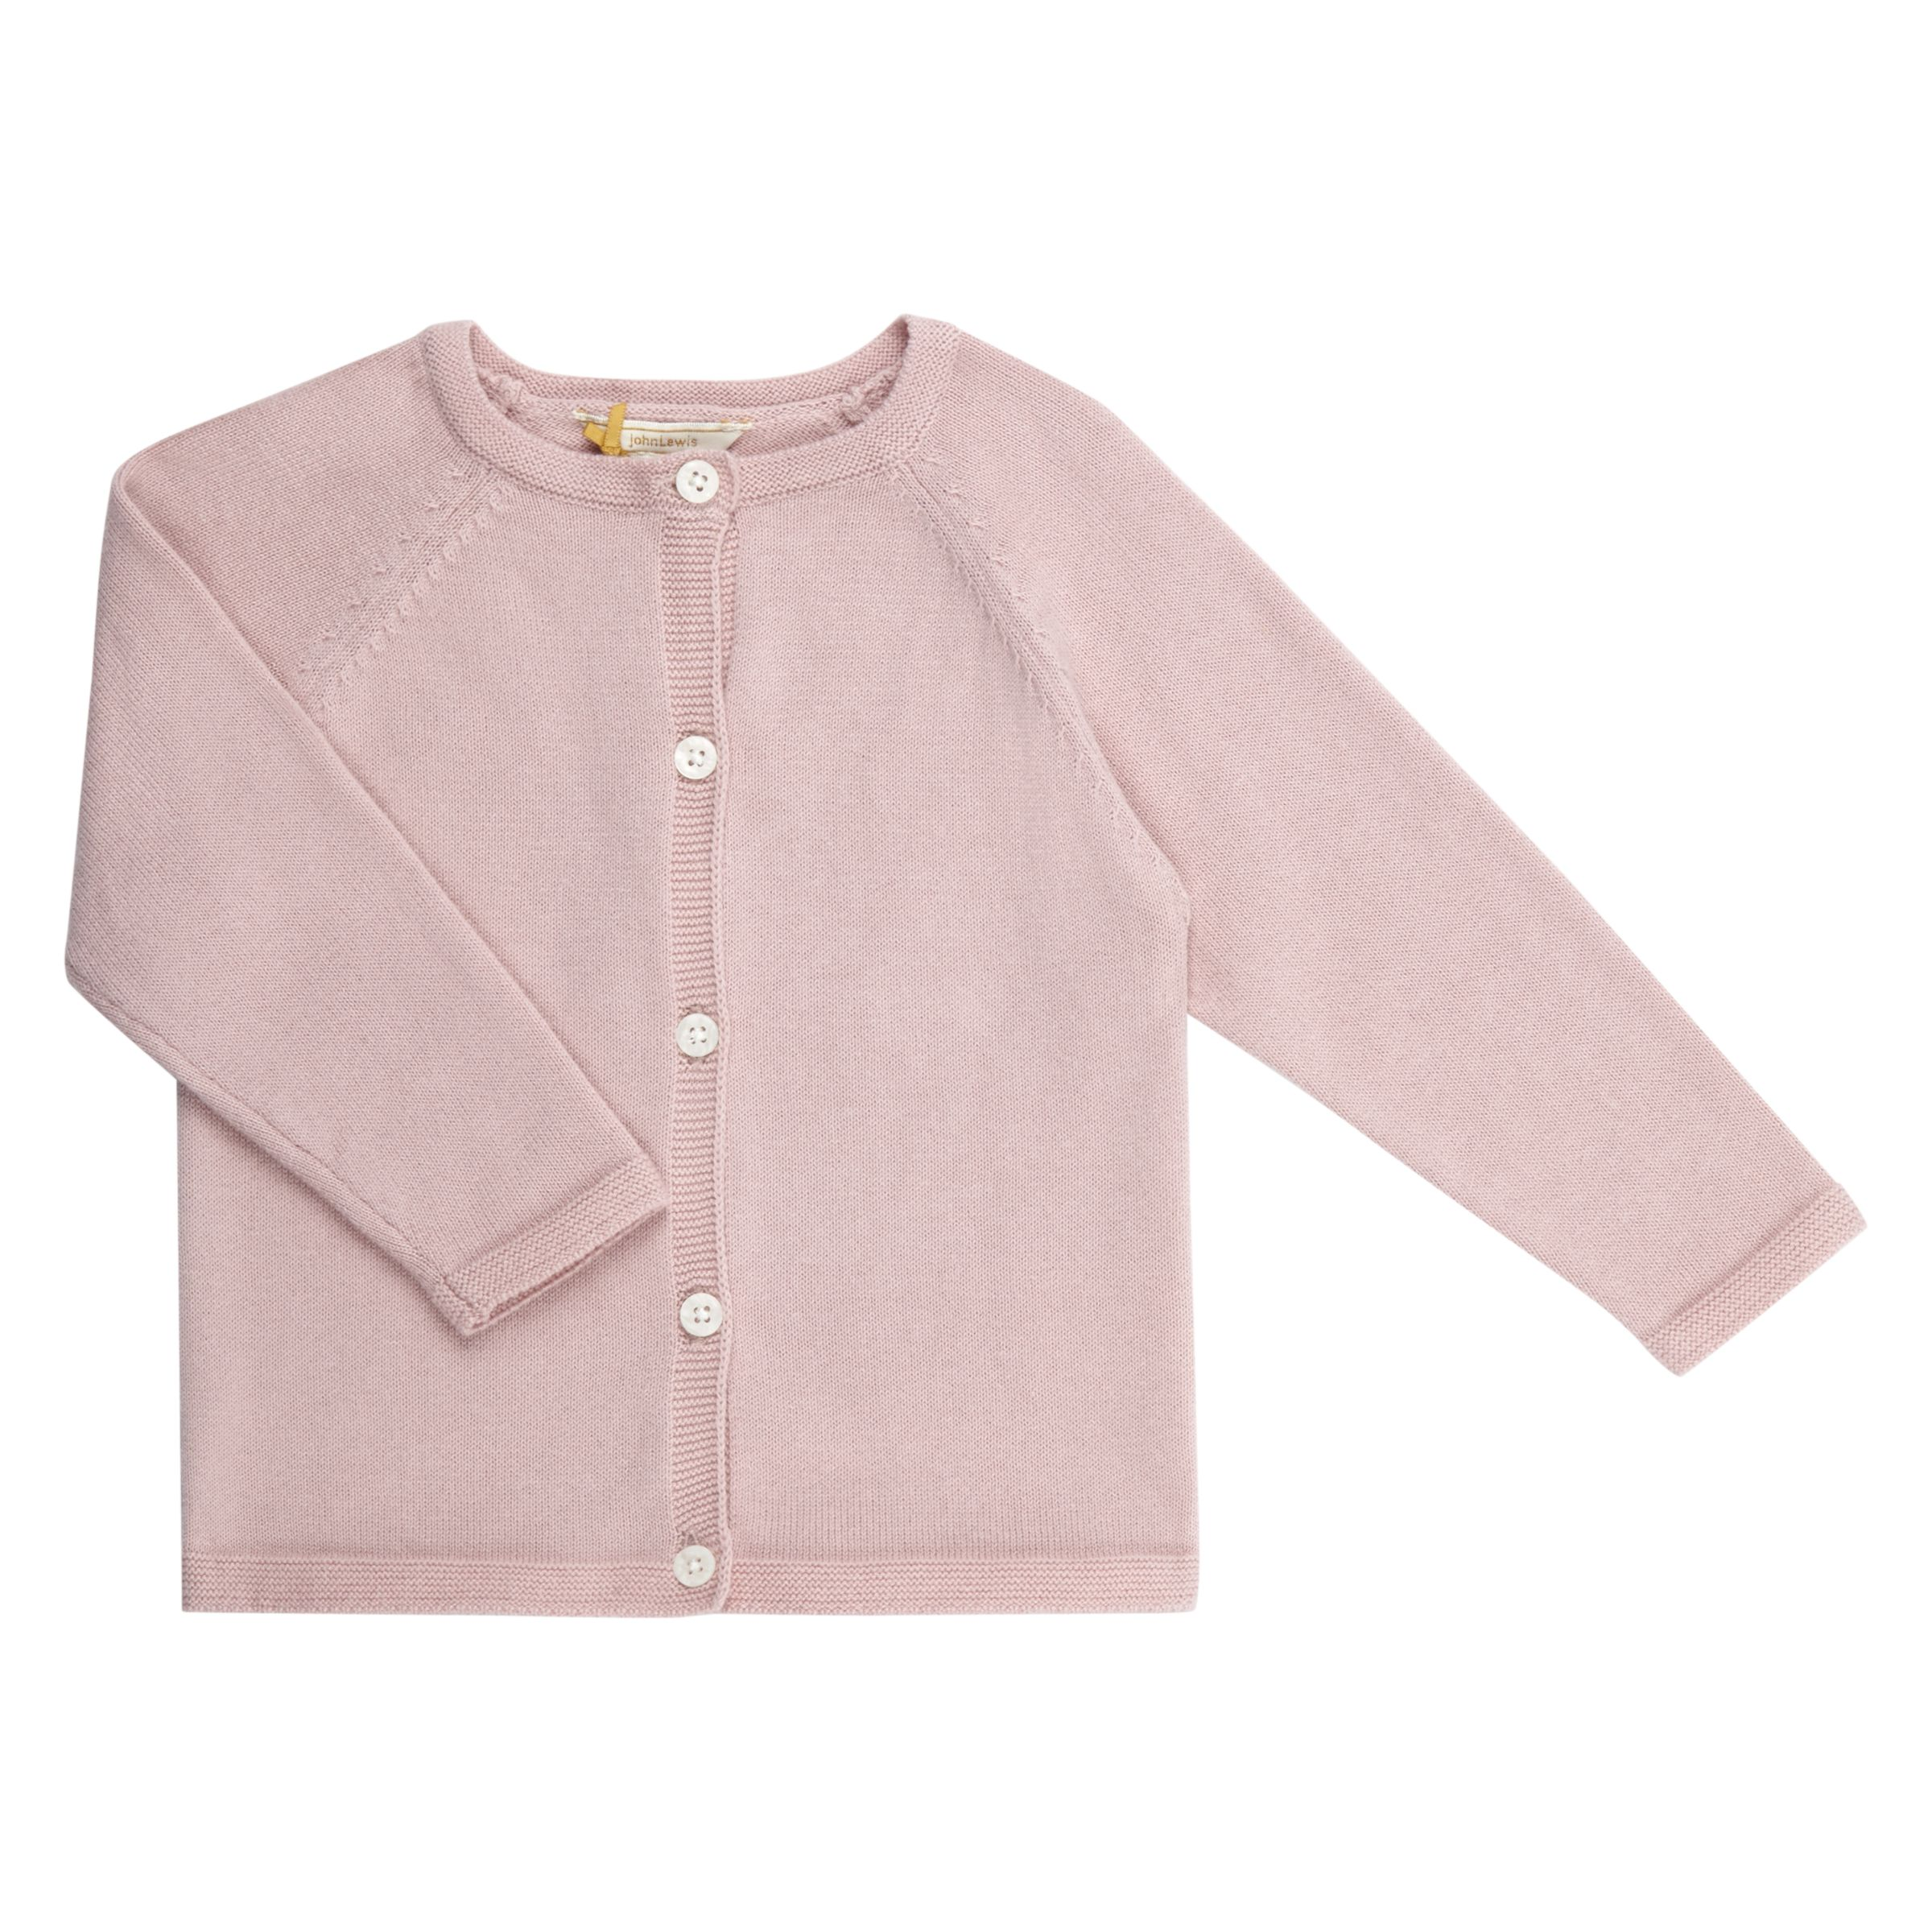 John Lewis Heirloom Collection John Lewis Heirloom Collection Baby Knit Cardigan, Lilac